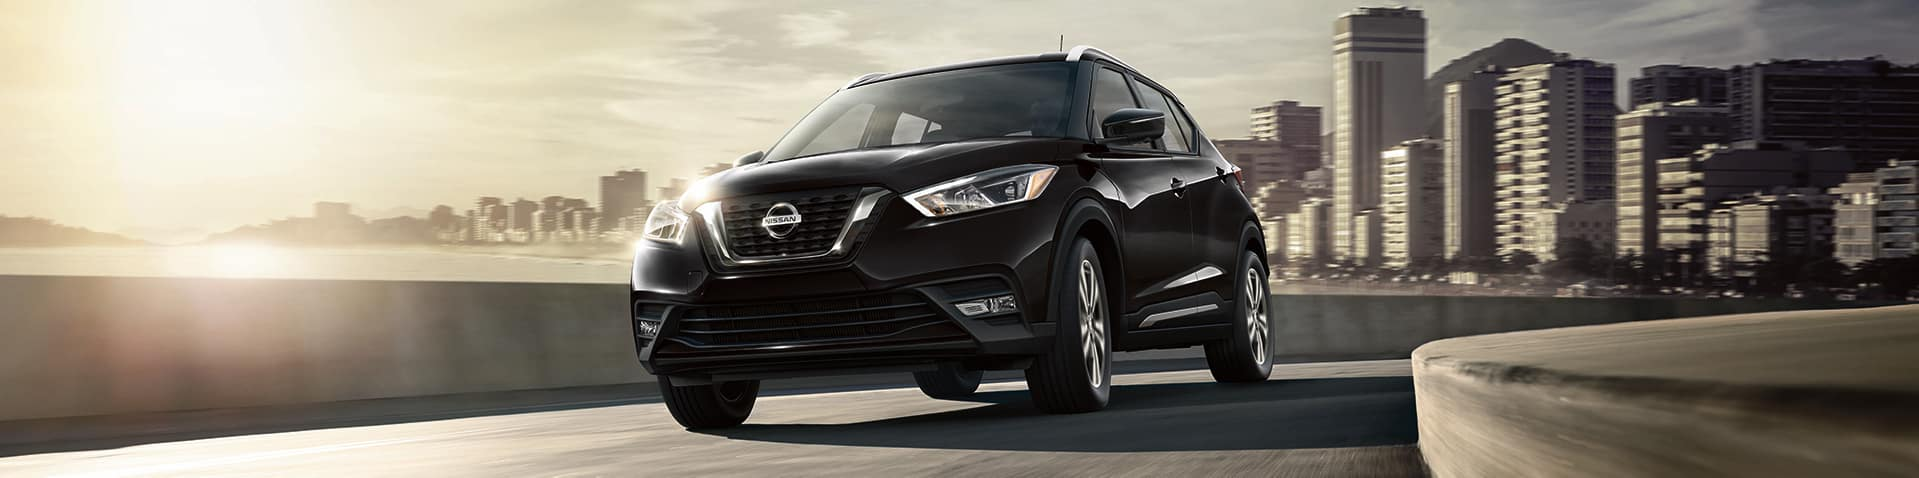 Boch Nissan South is a Family Owned Dealership near Cumberland, RI | Black MY19 Nissan Kicks driving on highway outside city